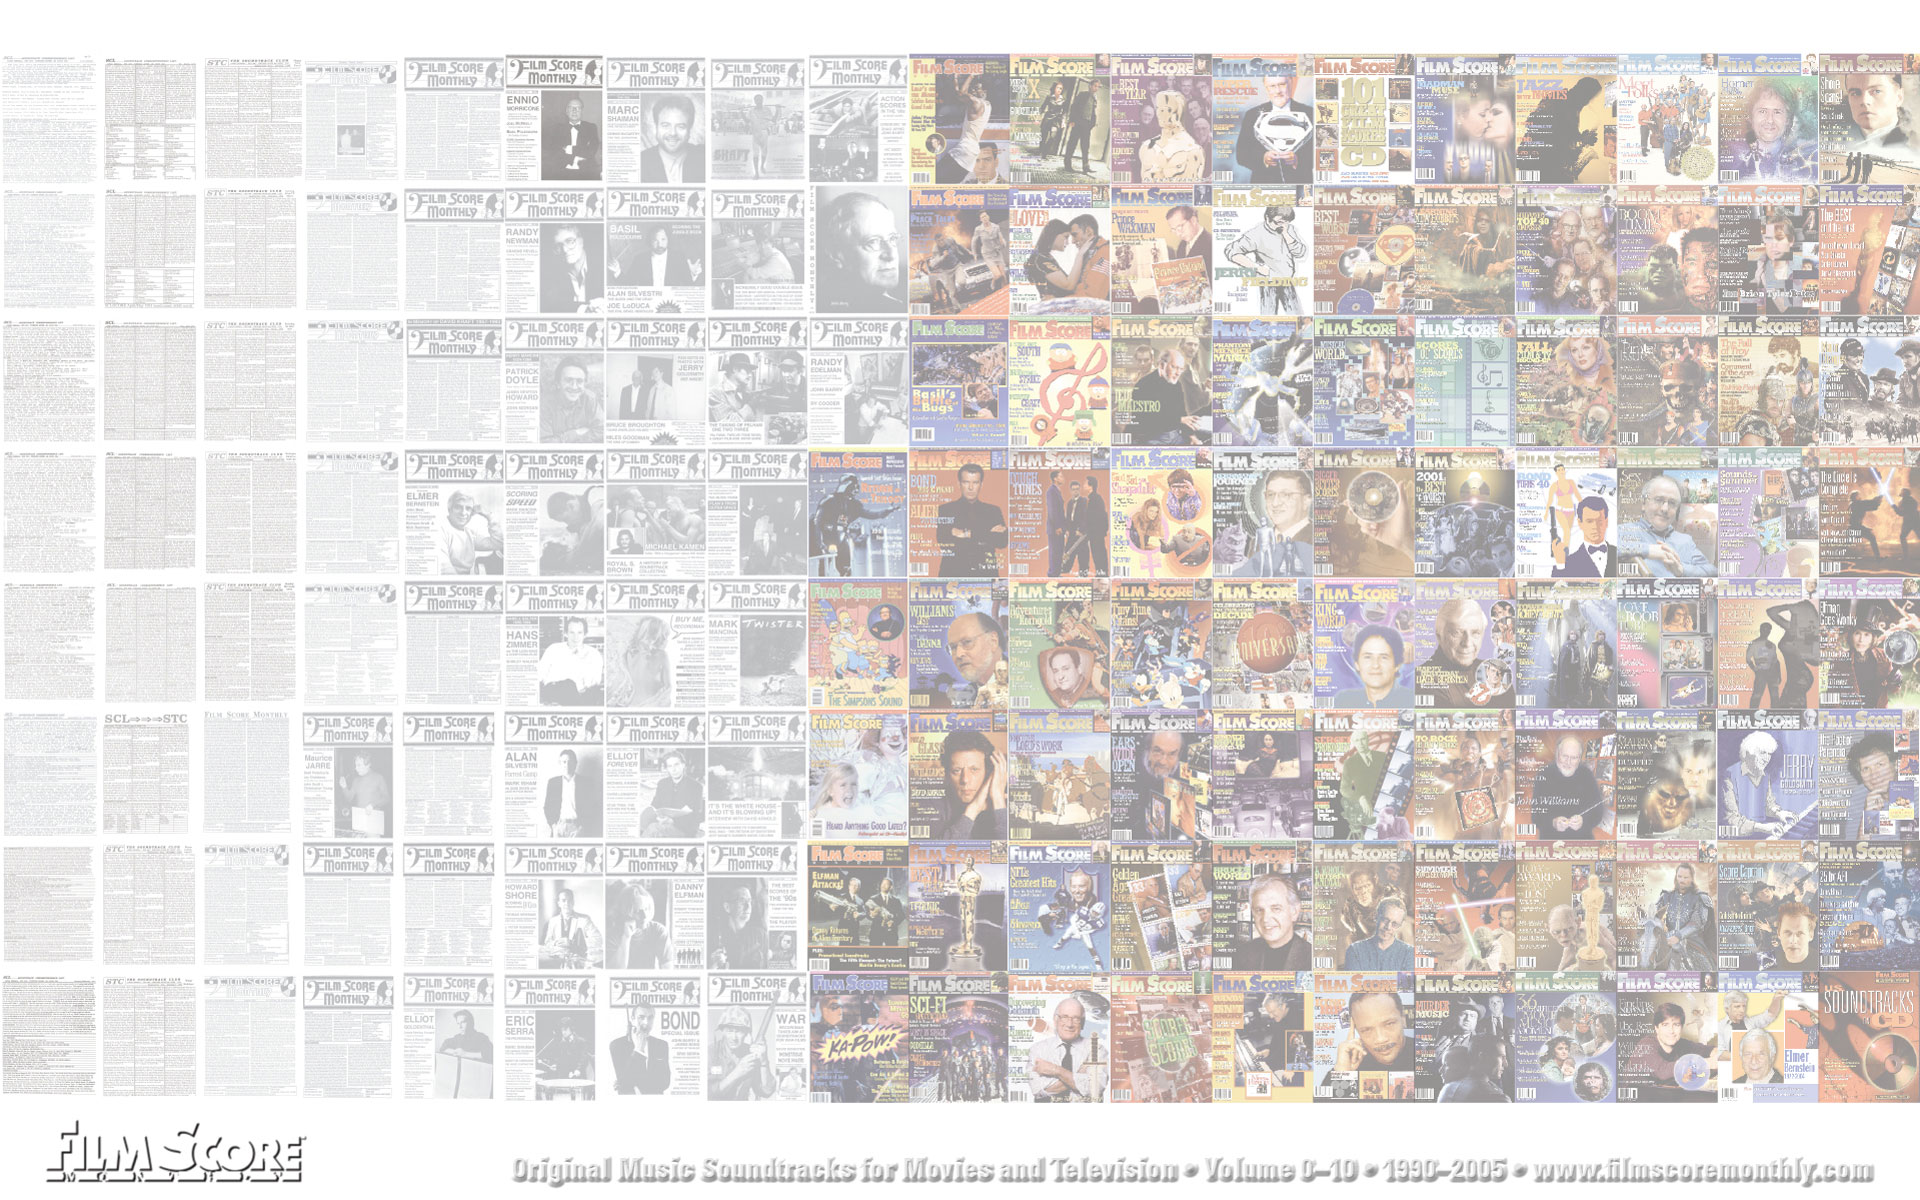 Wallpaper #4: FSM Print Magazine: All Covers, 1990-2005 (muted)